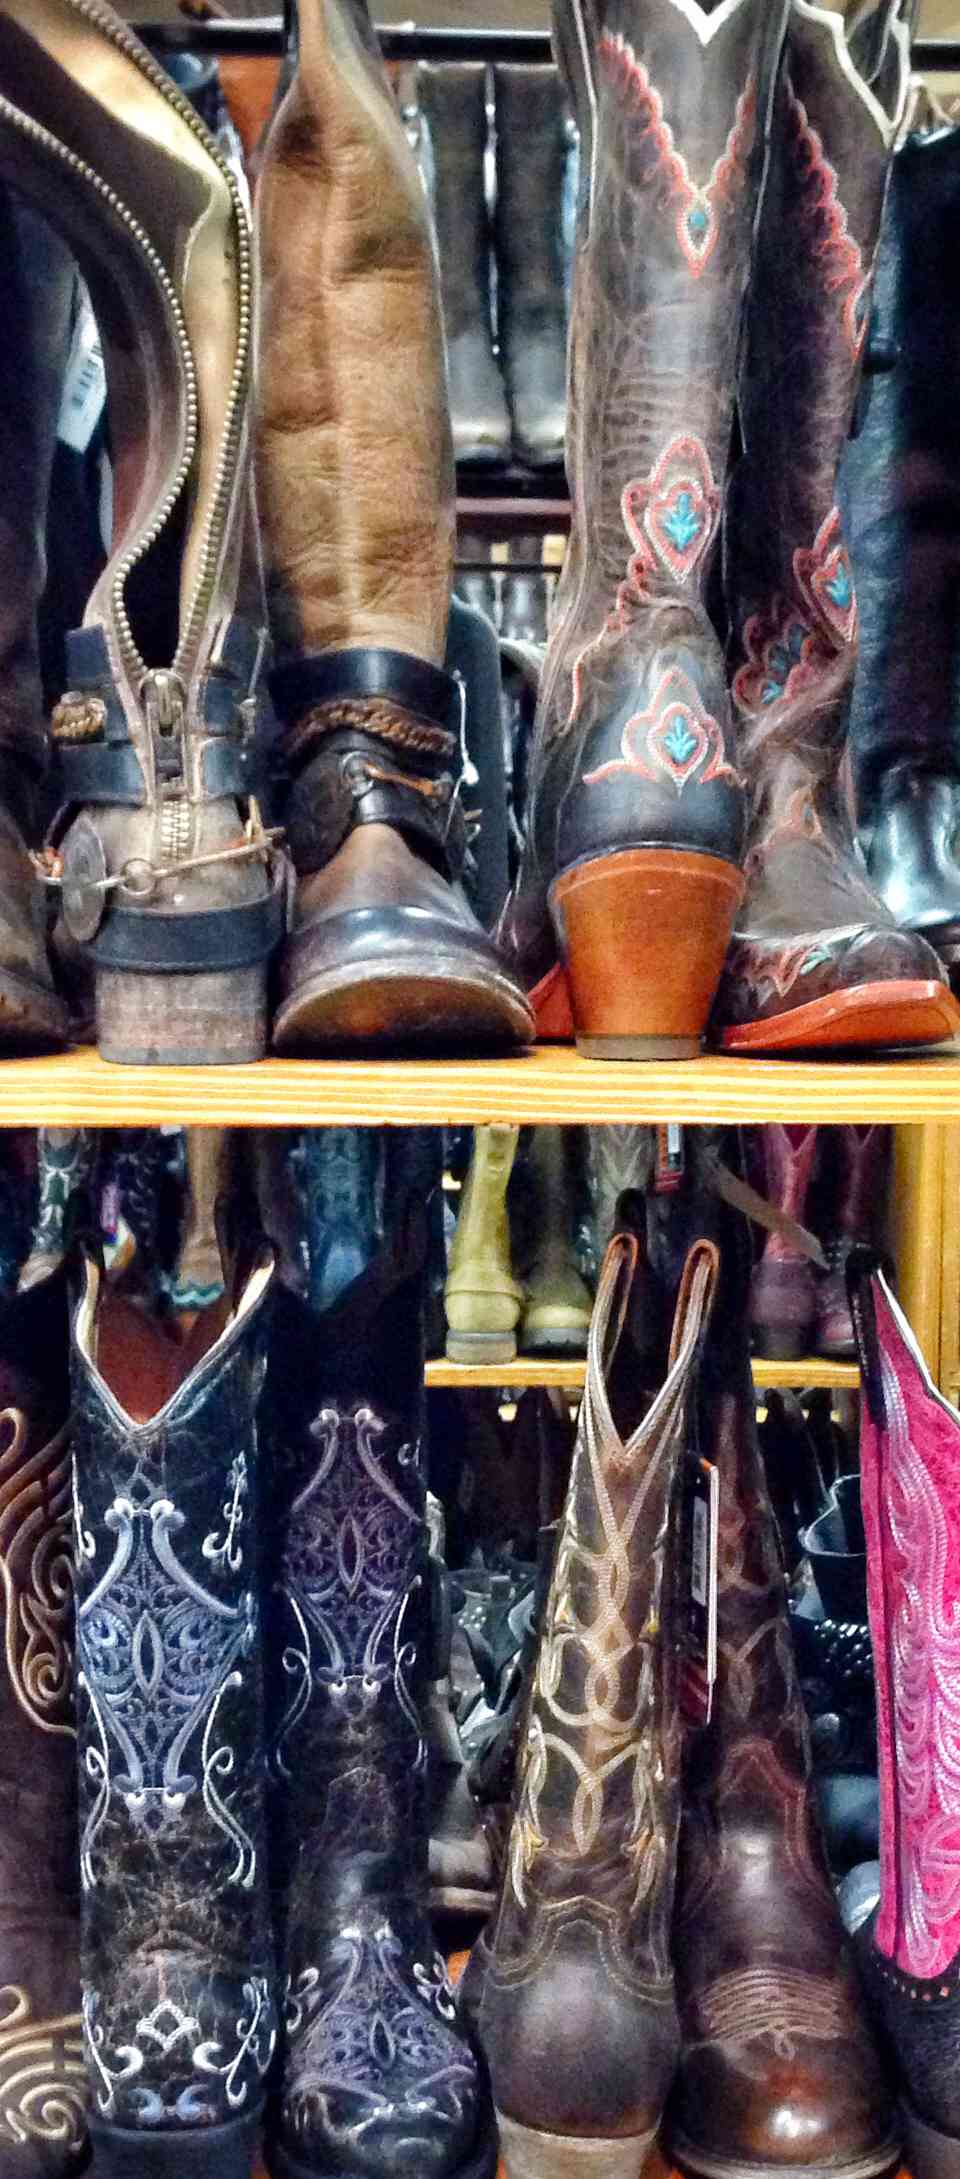 Rows of cowboy boots on shelves in Allen's Boots, Austin, Texas.